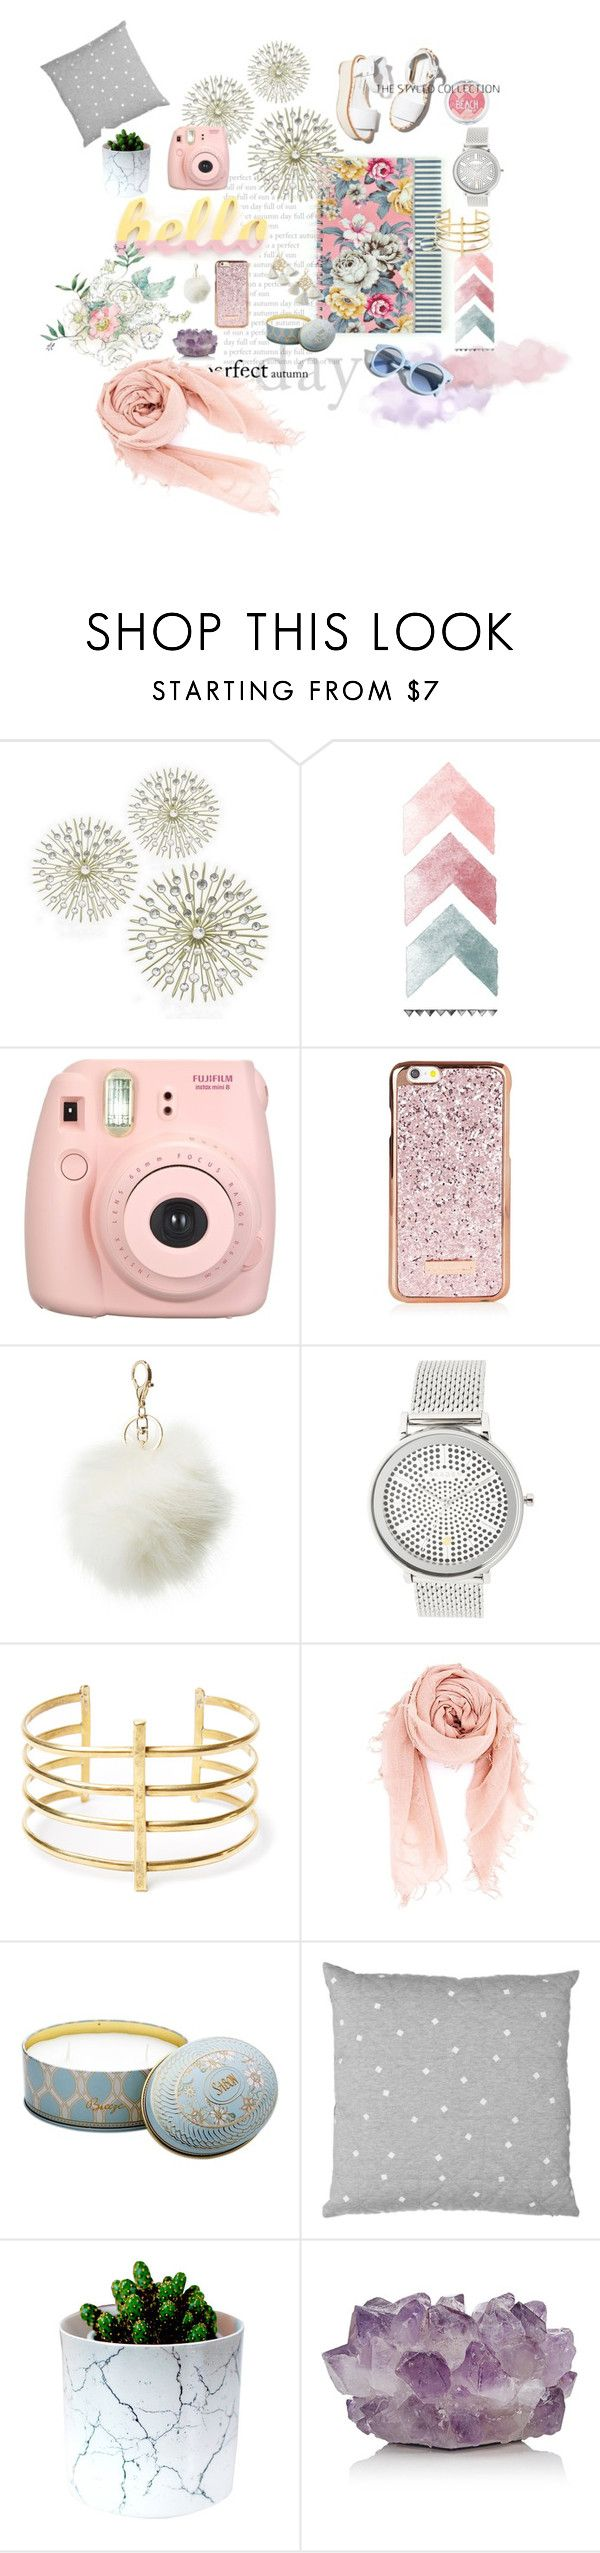 """Blush babe"" by iwona-estera on Polyvore featuring beauty, Pinko, Paloma Barceló, Fujifilm, Charlotte Russe, Skagen, BauXo, Chan Luu, McCoy Design and Marte Frisnes"